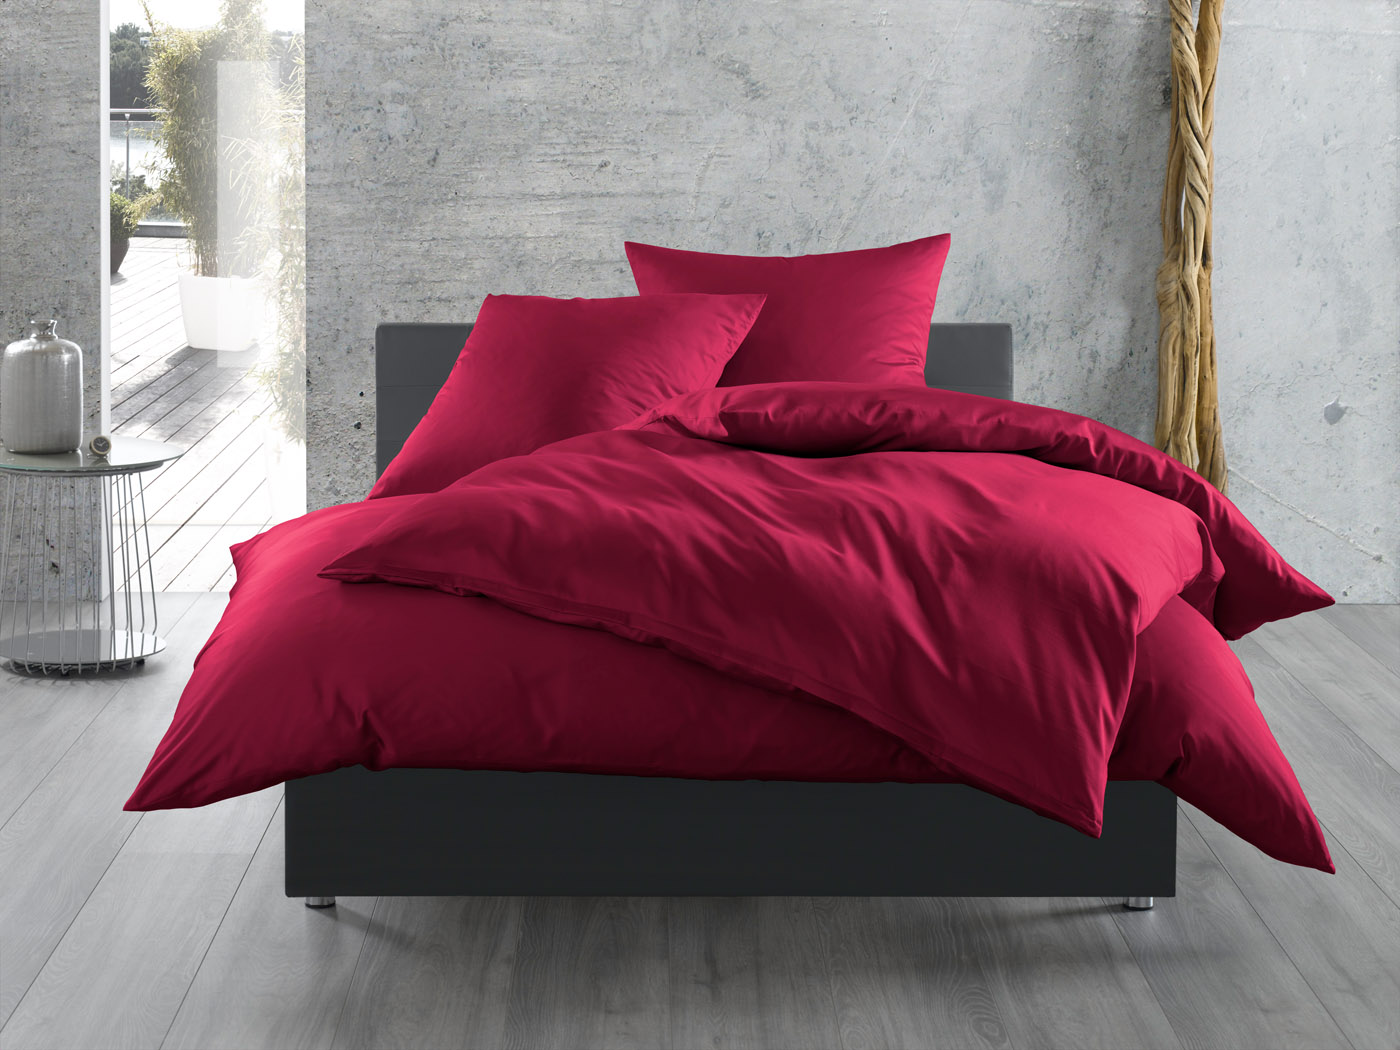 mako satin bettw sche uni einfarbig pink online kaufen bms. Black Bedroom Furniture Sets. Home Design Ideas